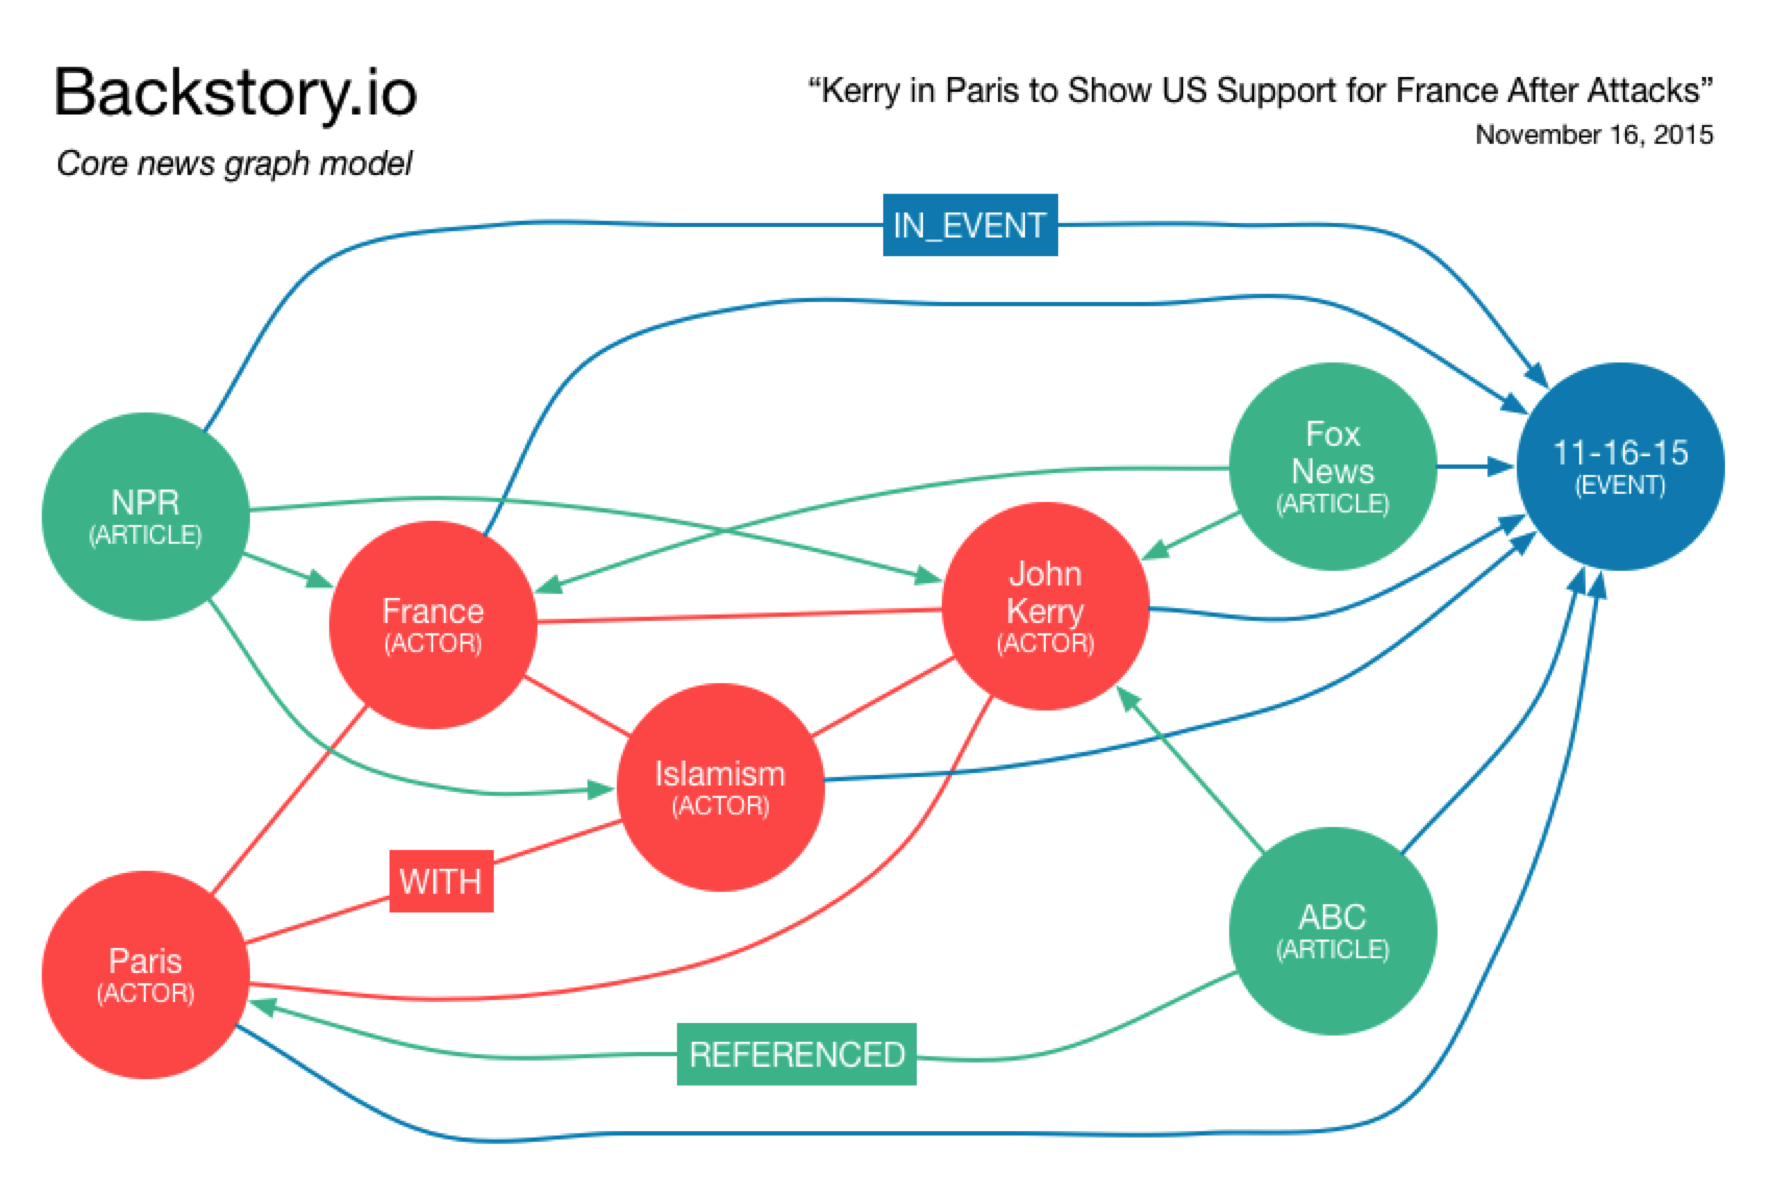 Learn How Backstory.io Uses Neo4j to Graph News Stories in a New Way